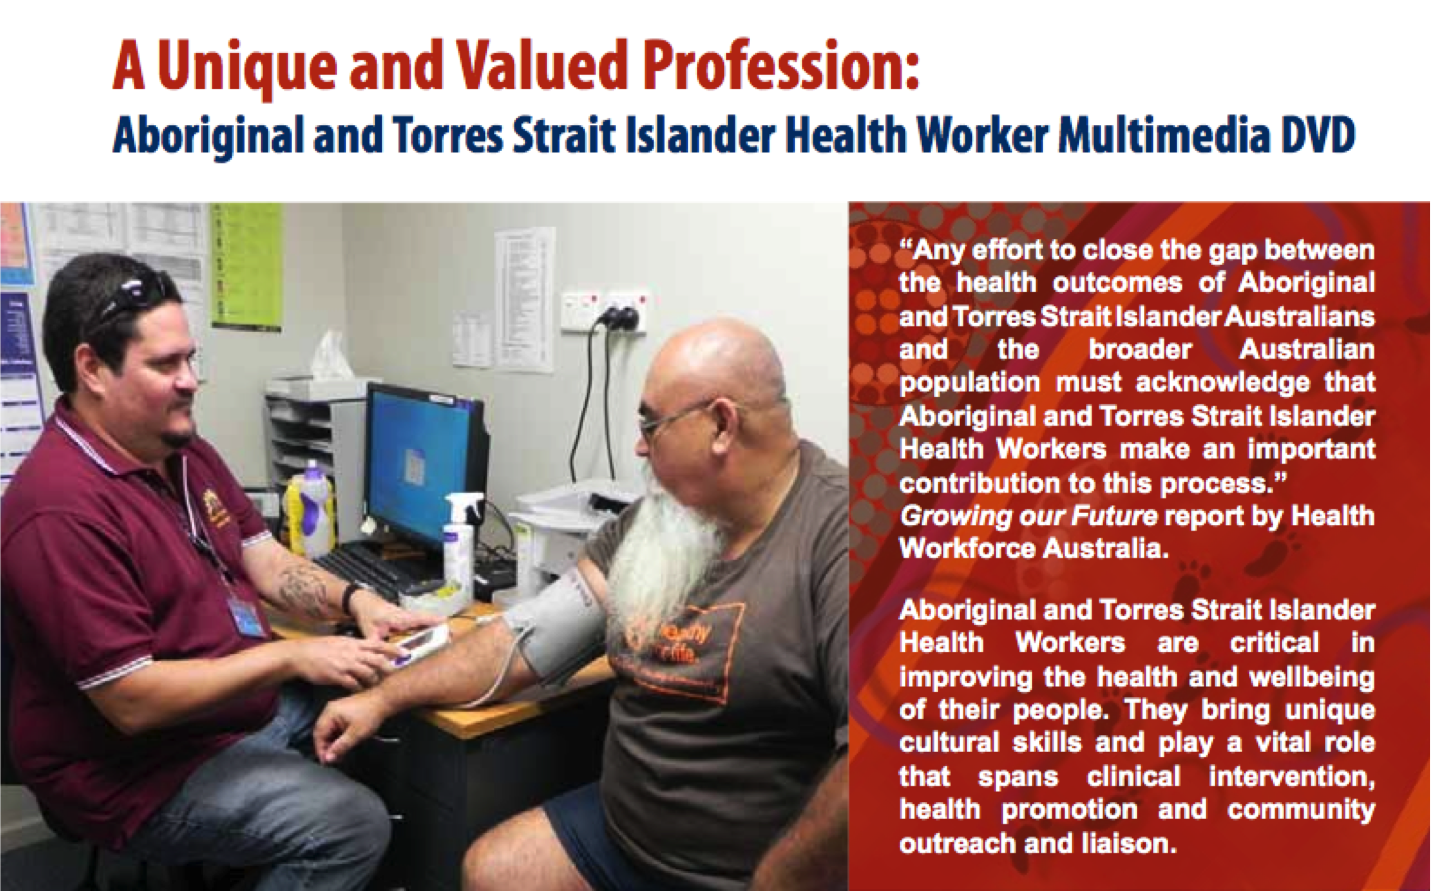 A unique and valued profession:  Aboriginal and Torres Strait Islander Health Worker Multimedia DVD